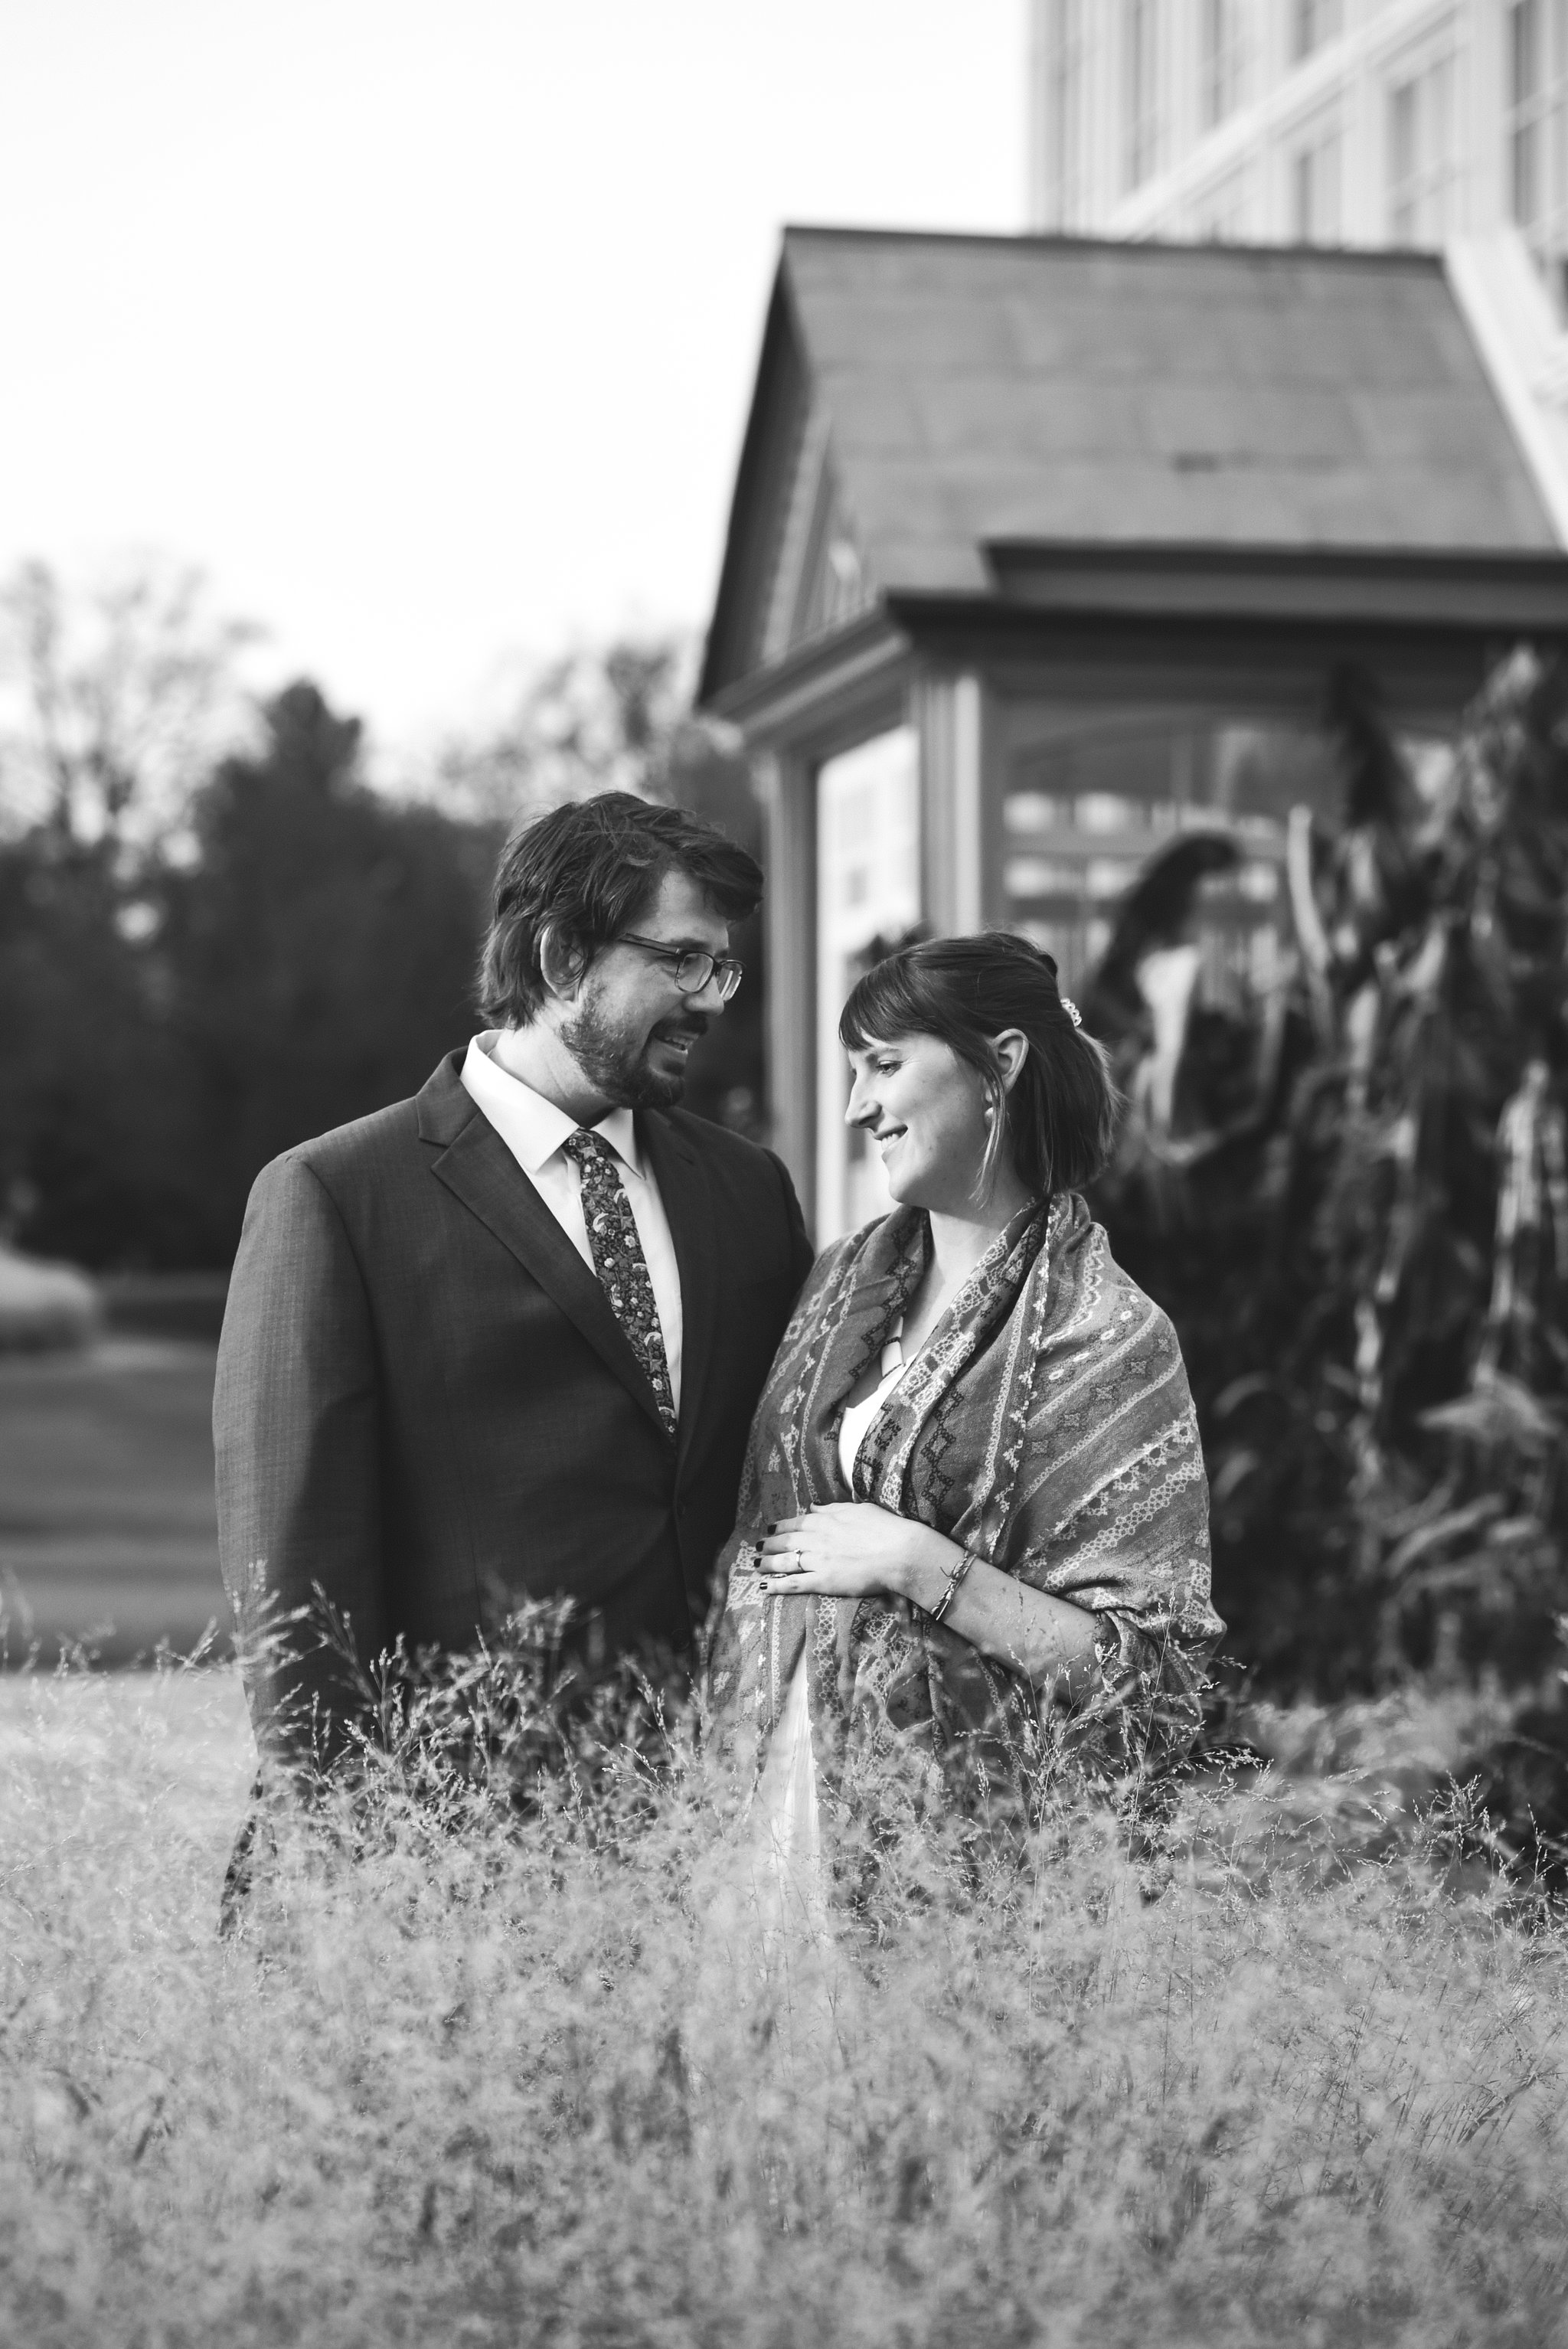 Rawlings Conservatory, Druid Hill Park, Intimate Wedding, Nature, Baltimore Wedding Photographer, Romantic, Classic, Bride and Groom Smiling Together, Black and White Photo